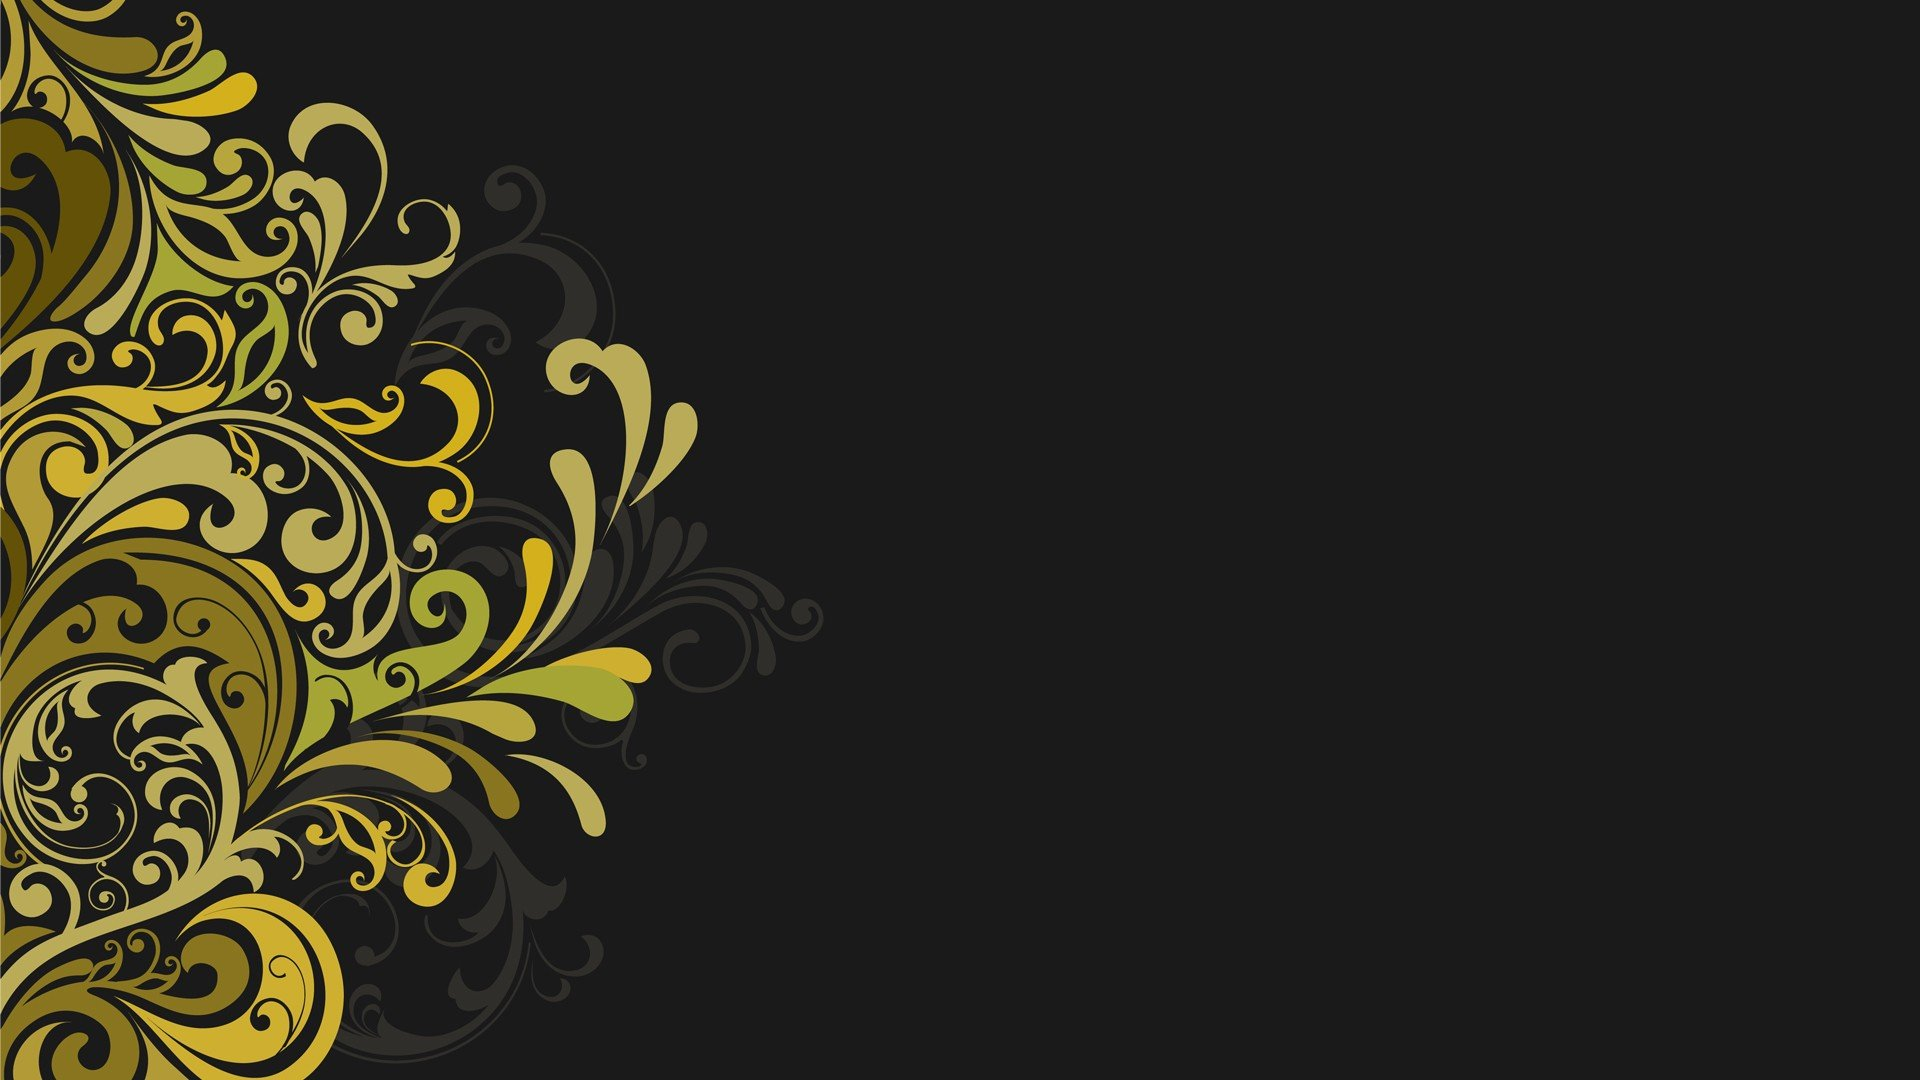 vectors floral graphics grey background